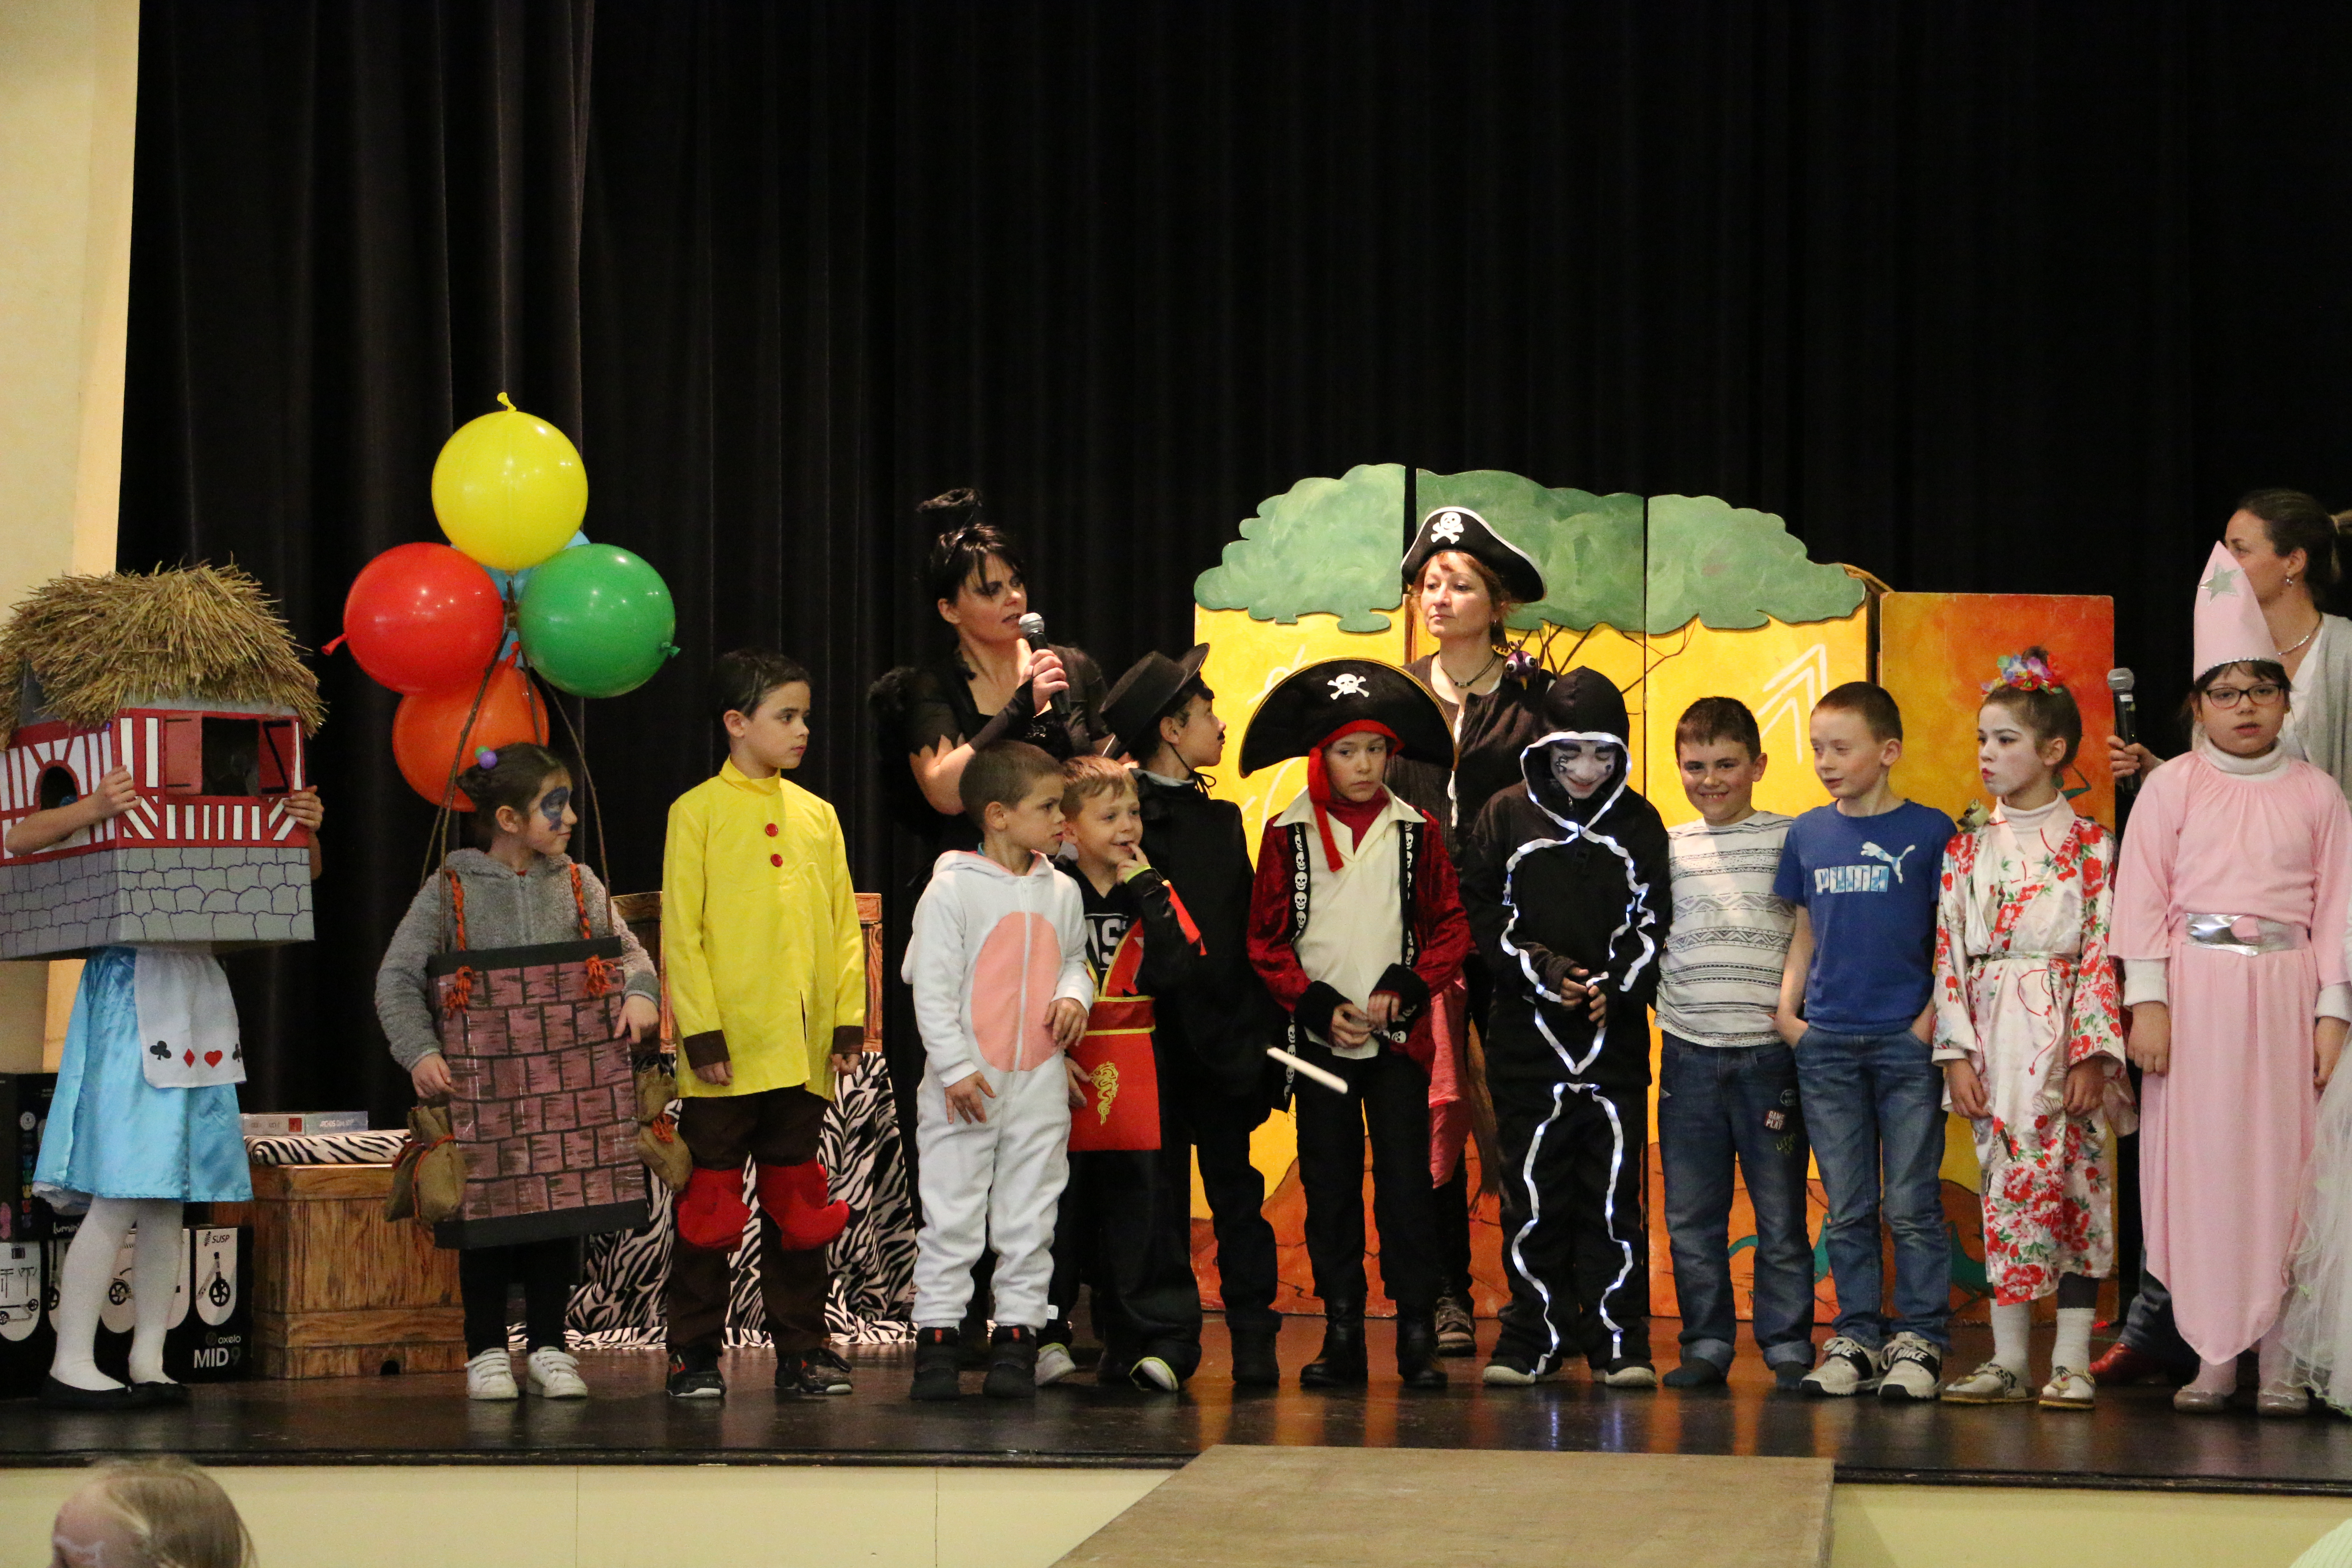 Groupe 6 - 10 ans